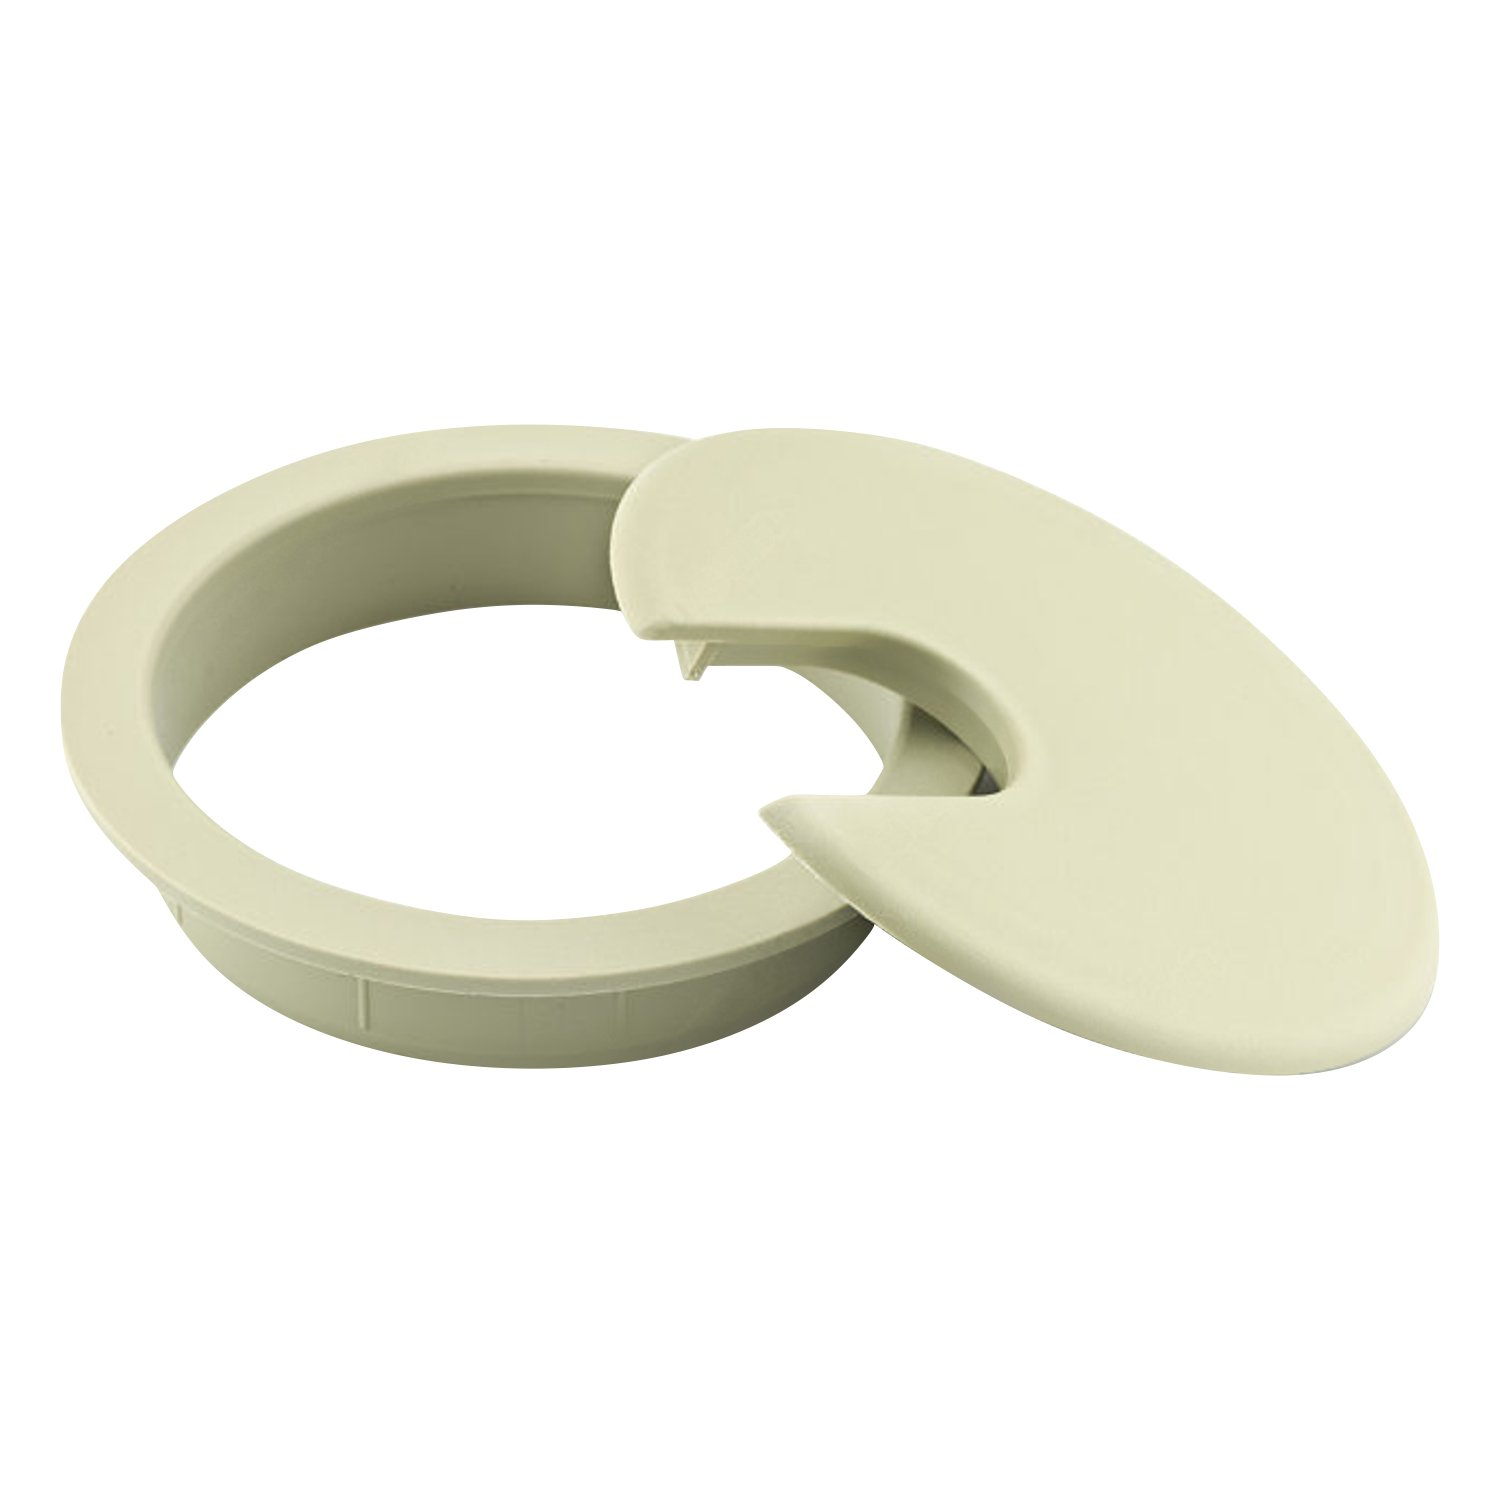 Rok Hardware 3'' (76mm) Round Computer Desk Table Port Wire Cable Cord Organizer Hole Cover Grommet ROKRG3CRM (3'', Cream, 25) by Rok (Image #1)